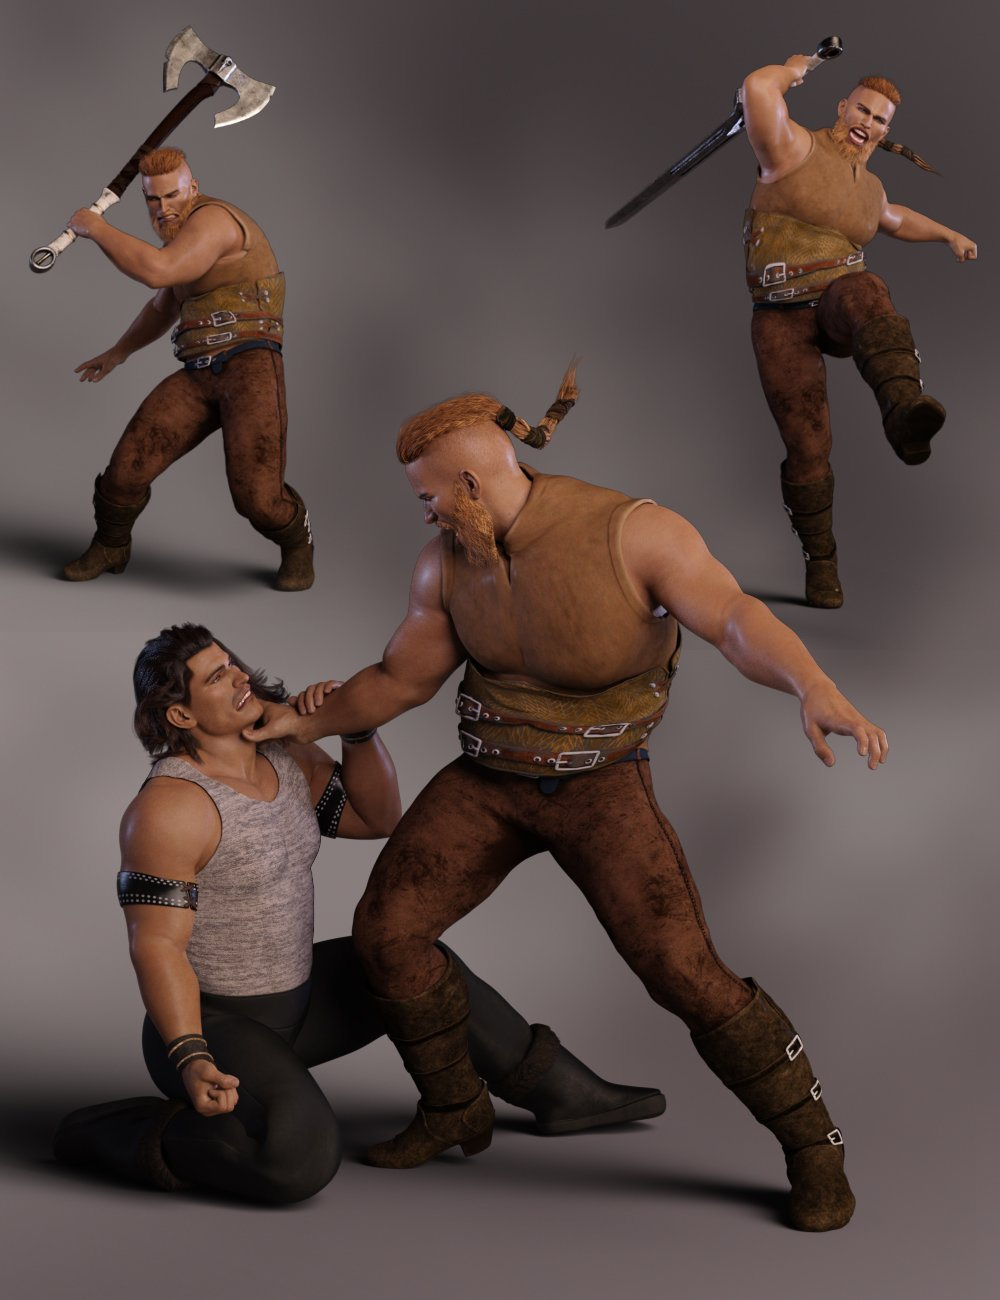 Pillage for Kjaer 8 and Genesis 8 Male by: lunchlady, 3D Models by Daz 3D